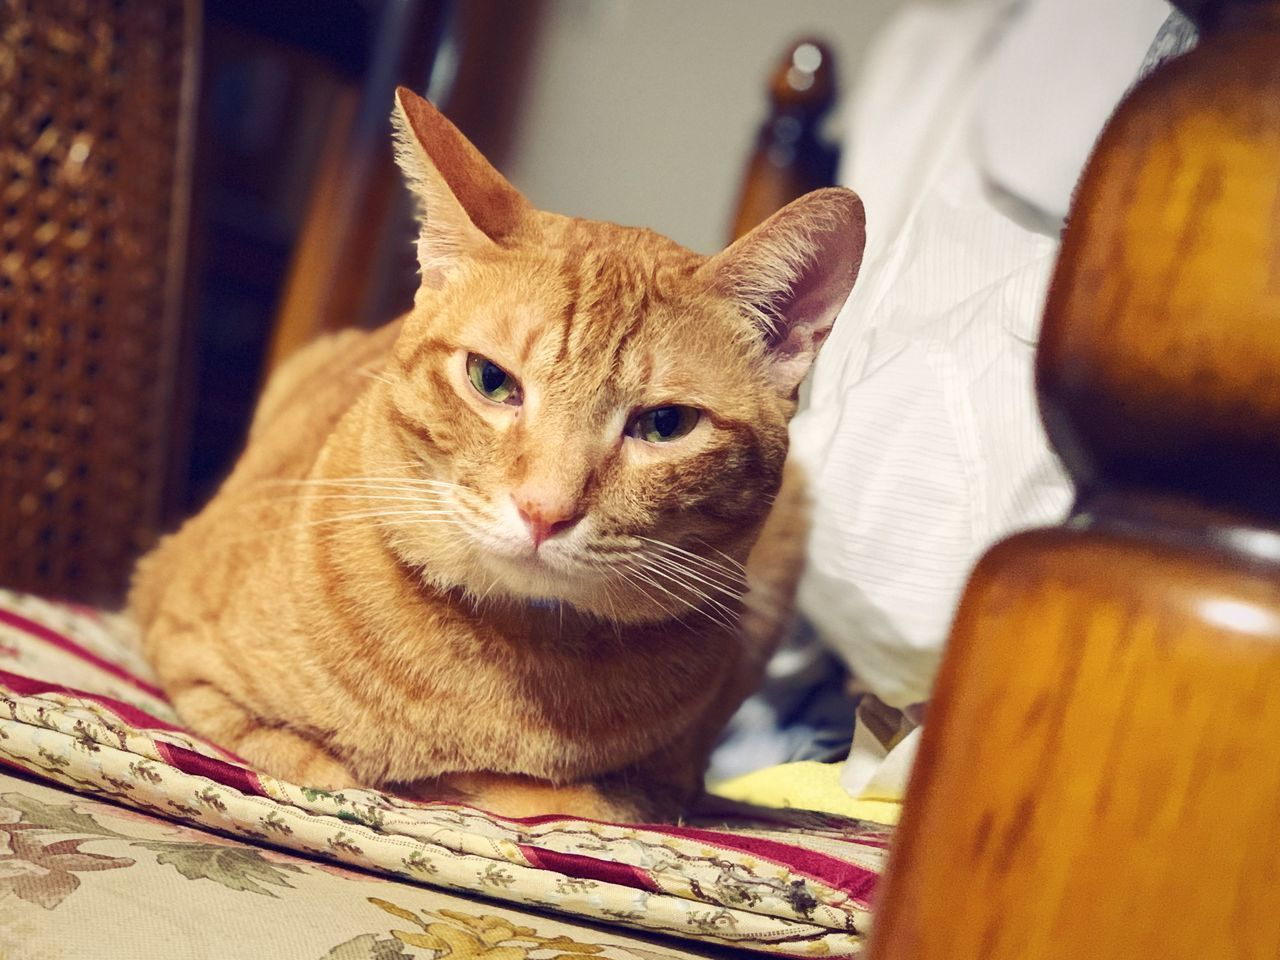 pets, domestic, cat, feline, domestic cat, domestic animals, mammal, animal themes, animal, one animal, vertebrate, indoors, no people, close-up, whisker, relaxation, selective focus, container, looking away, looking, ginger cat, animal head, tabby